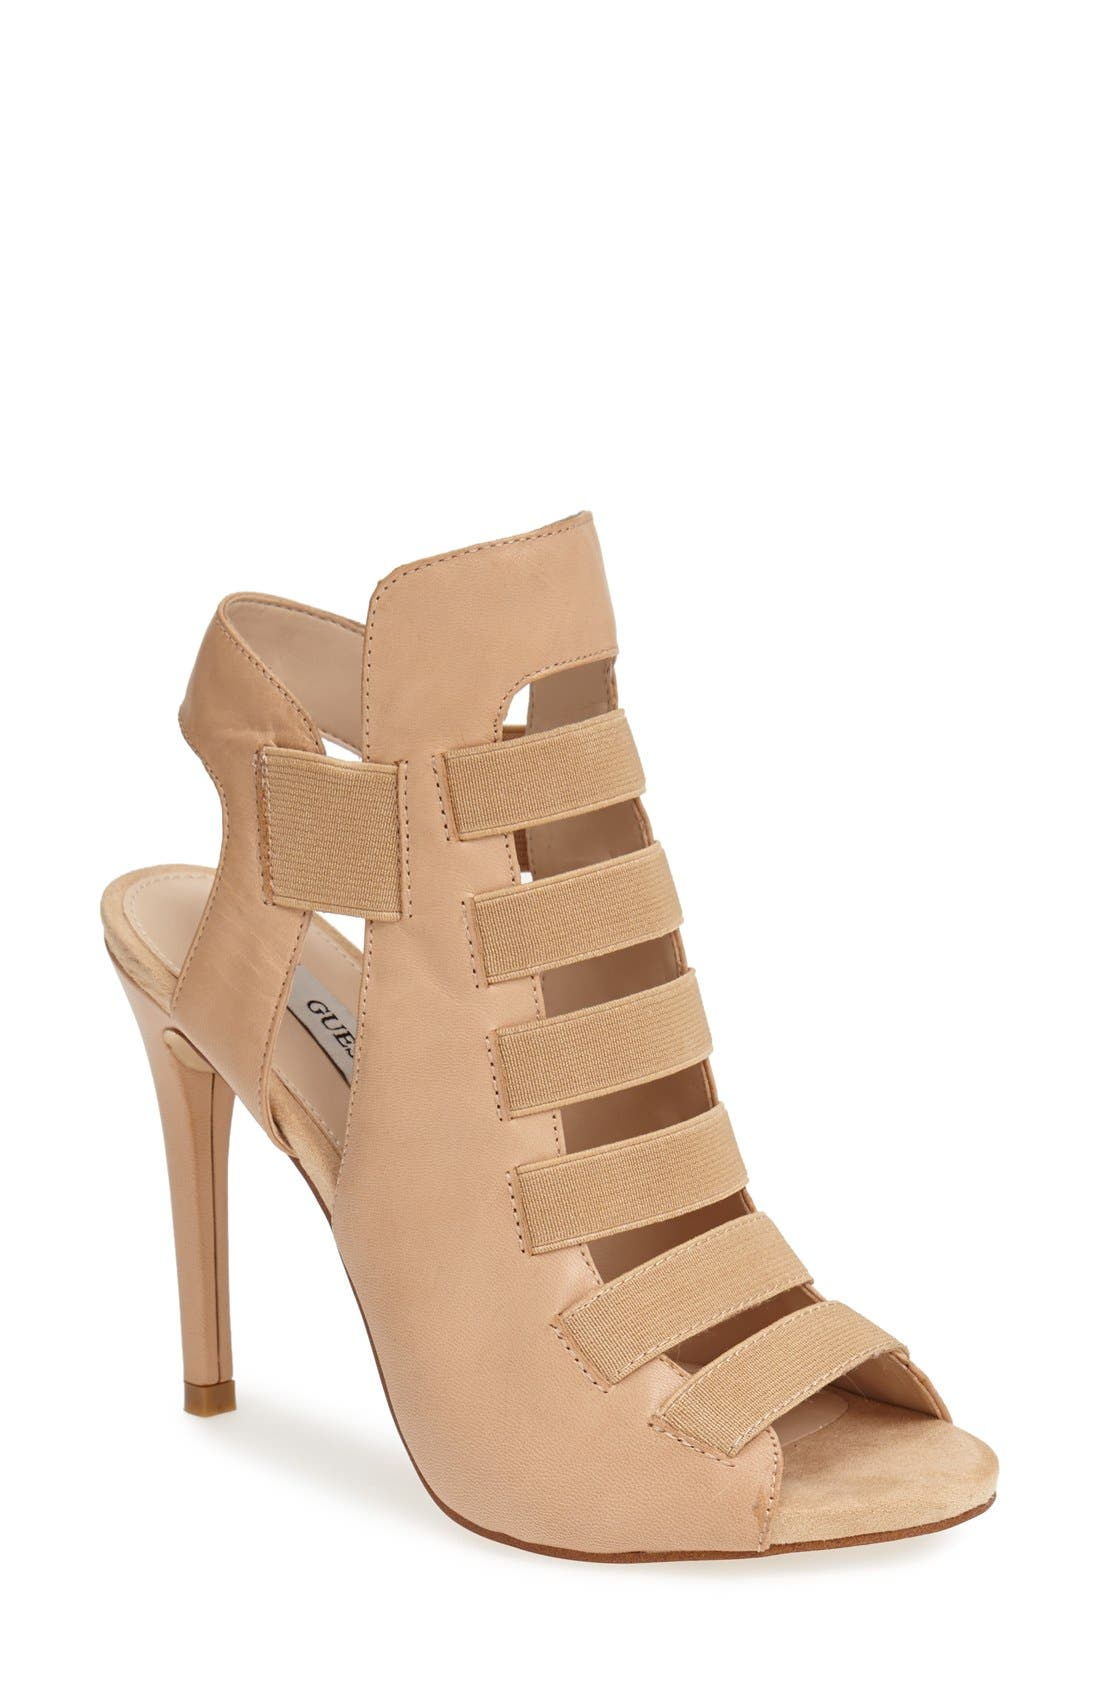 Alternate Image 1 Selected - GUESS 'Chica' Strappy Sandal (Women)